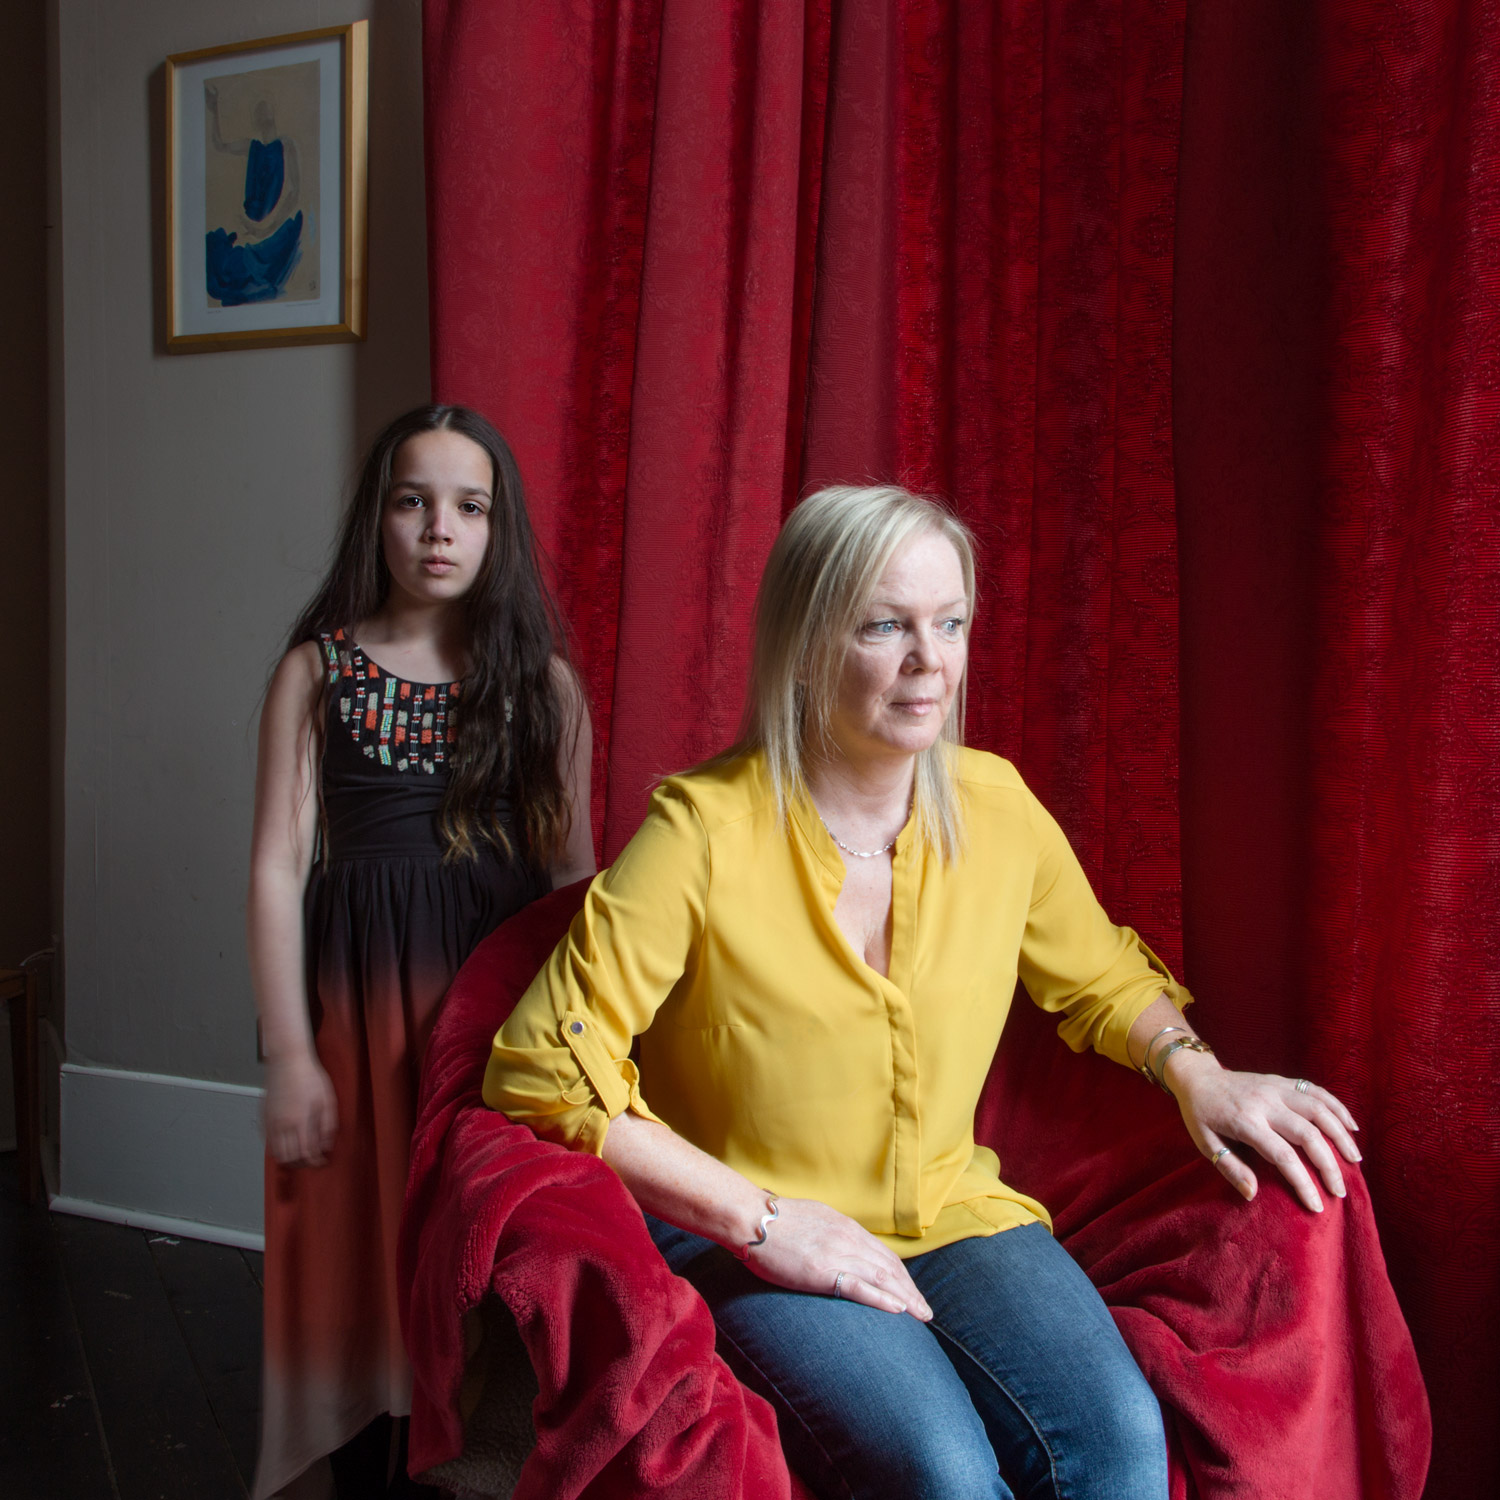 Marie and her daughter Olivia  From the book 'Invisible Britain: Portraits of Hope and Resilience'